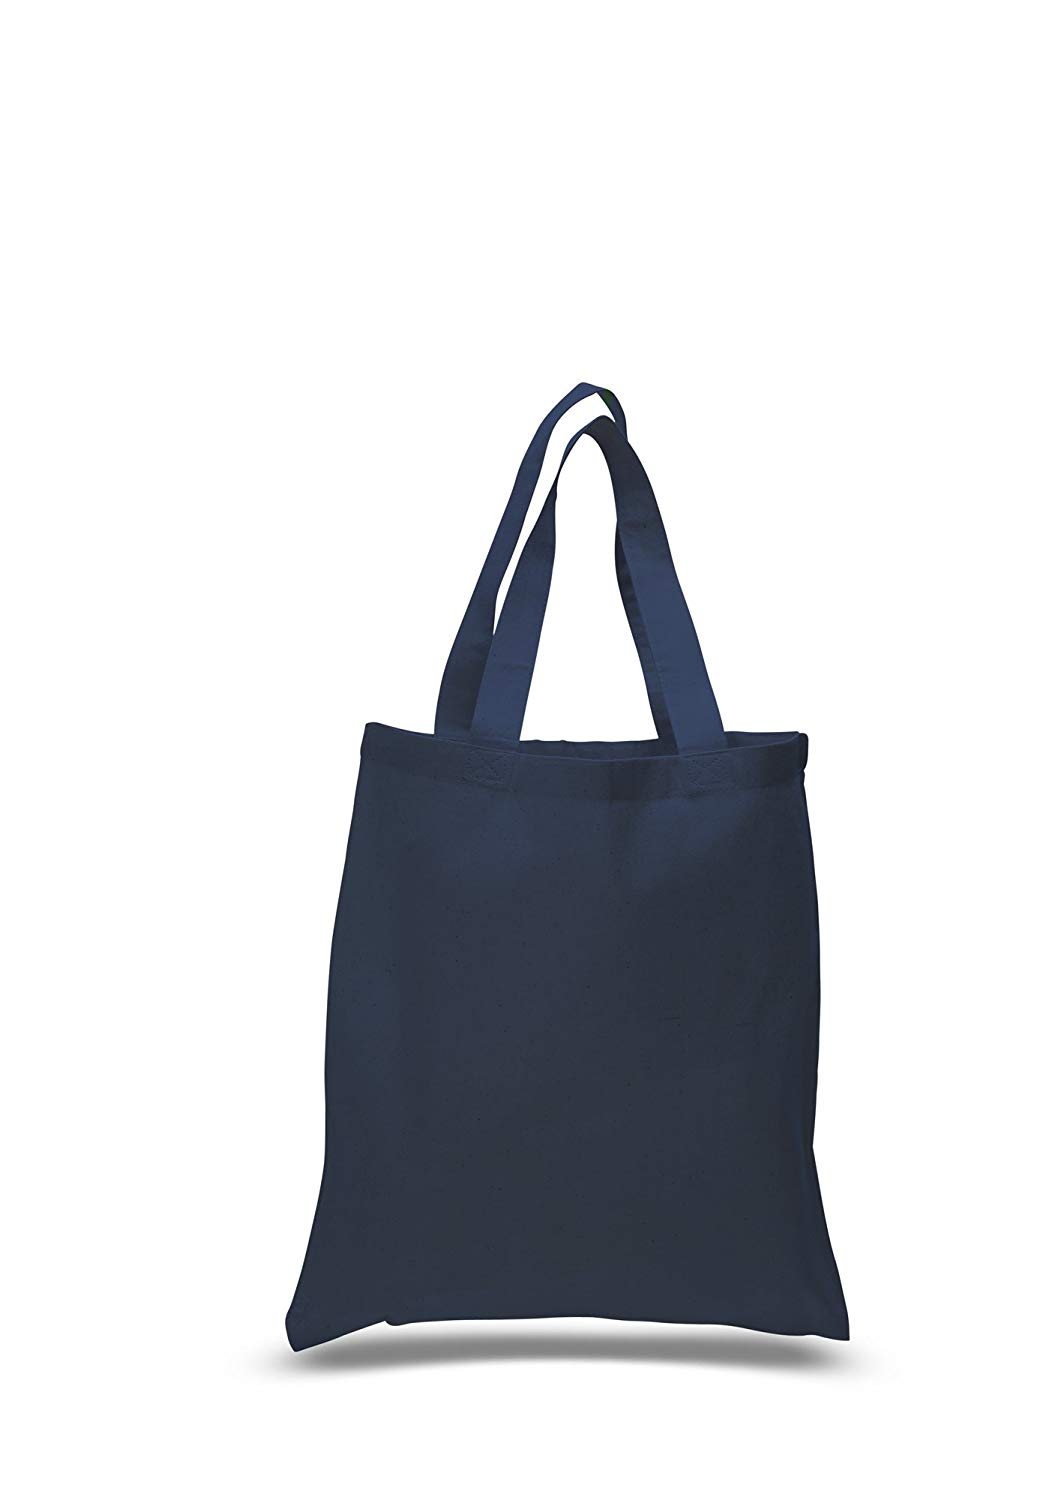 001e81c64 Get Quotations · 48 Pack (4 Dozen) Wholesale Blank Cotton Tote Bags Bulk  Reusable Cotton Reusable Bags